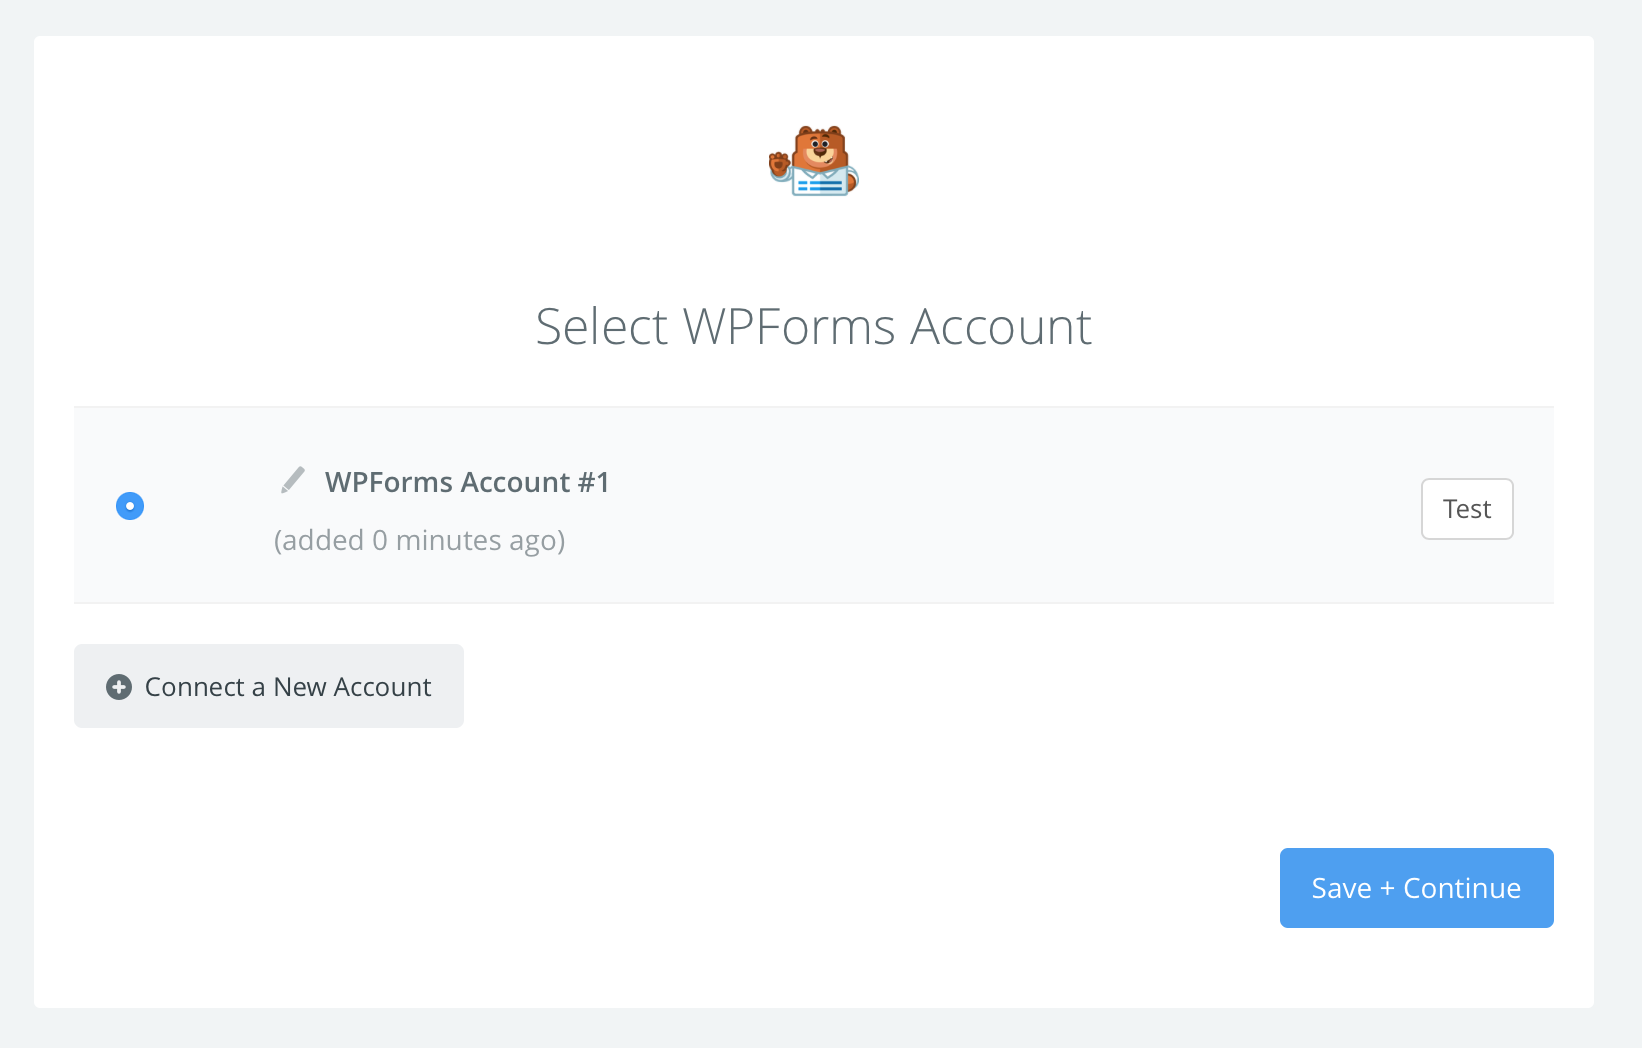 WPForms connection successfull